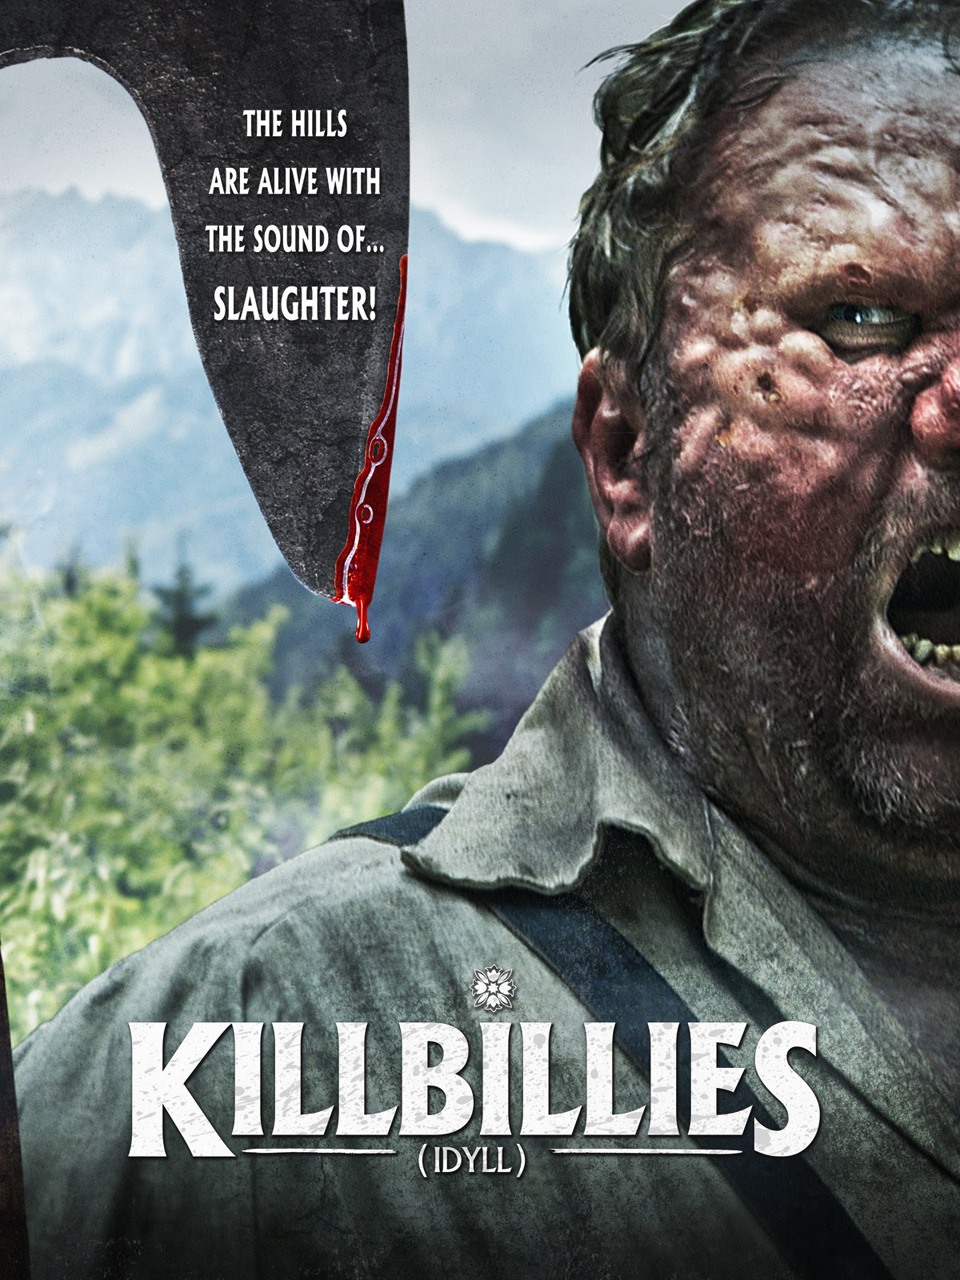 Watch the Trailer for Slovenia's First Horror Movie KILLBILLIES Coming October 25